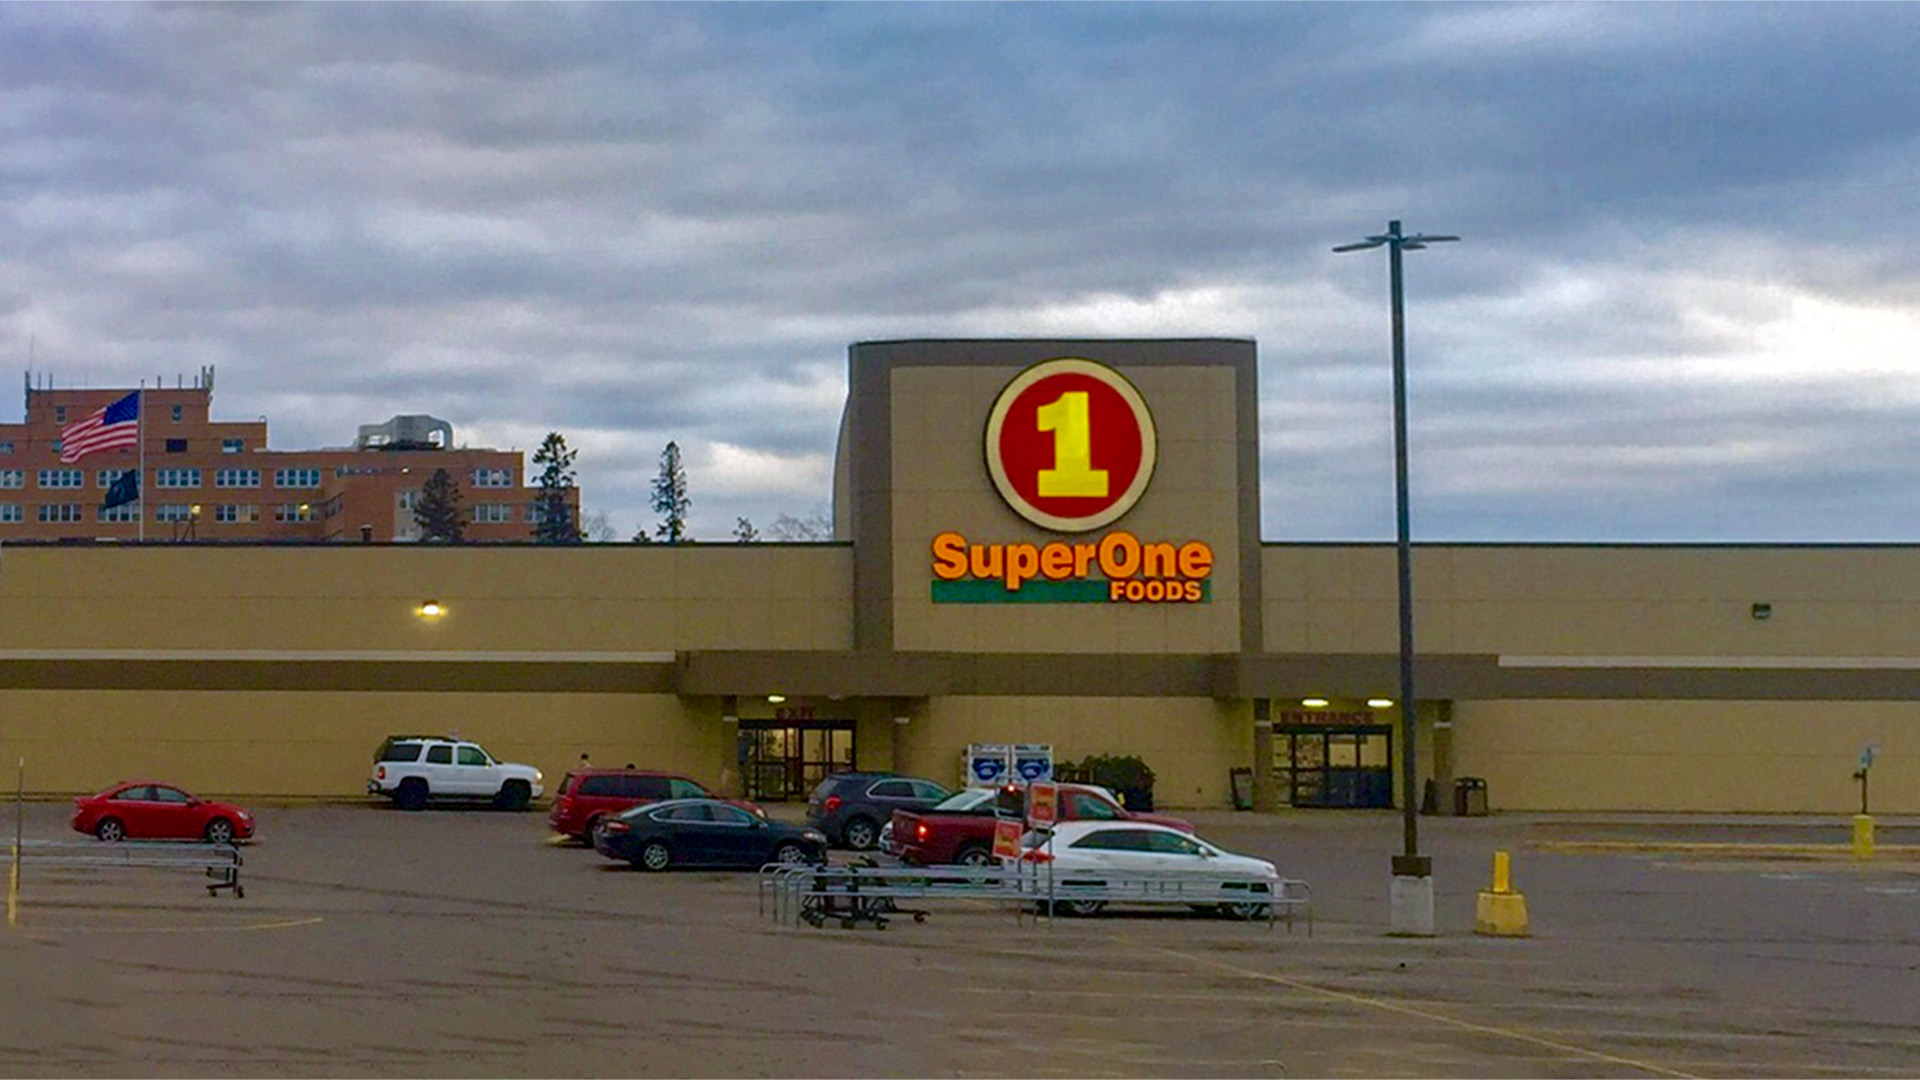 Midtown Retail Shoppng Mall Iron Mountain MI exterior Super One Foods front elevation